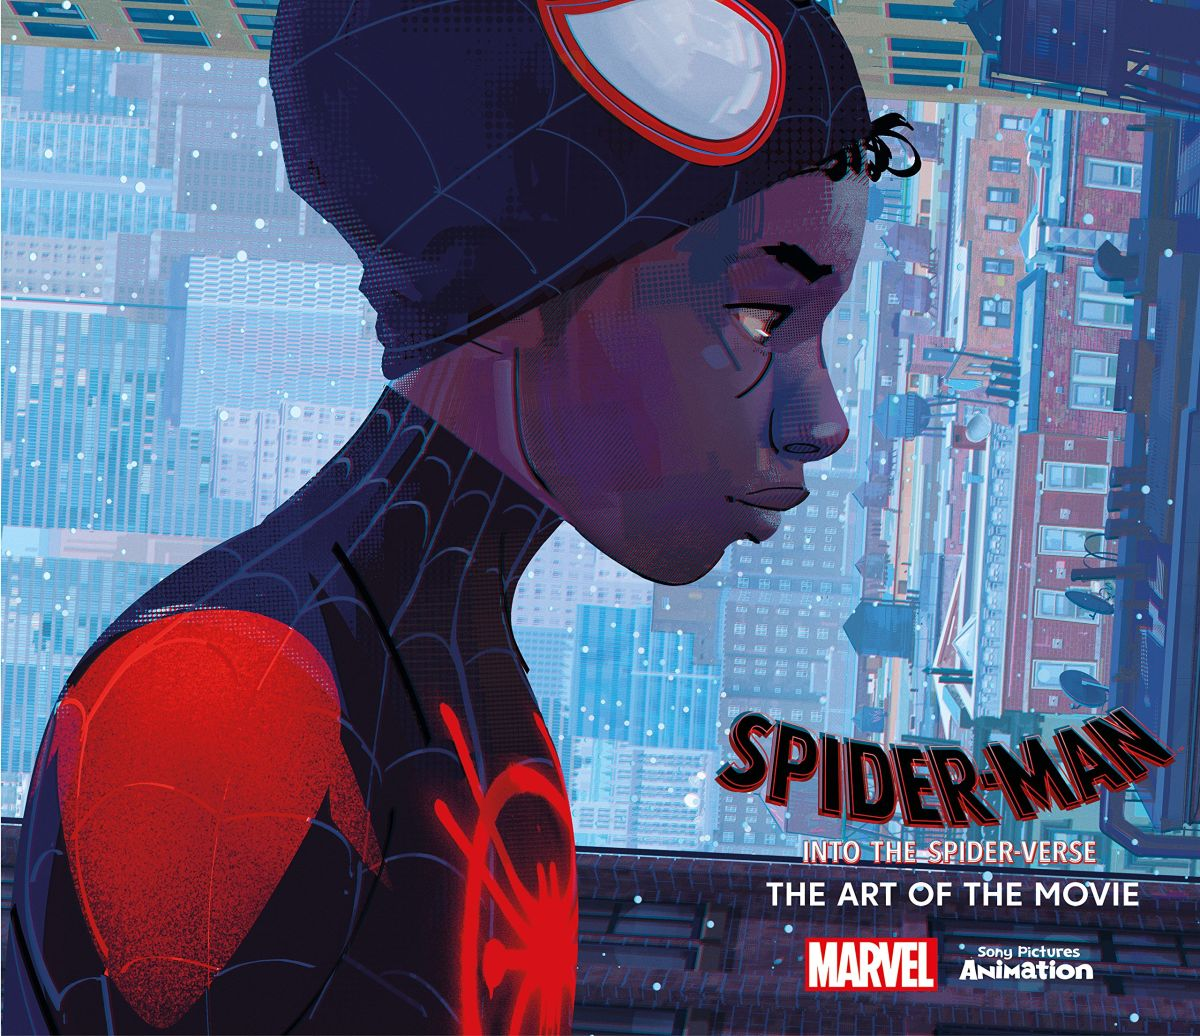 art book spiderman into the spider verse the art of